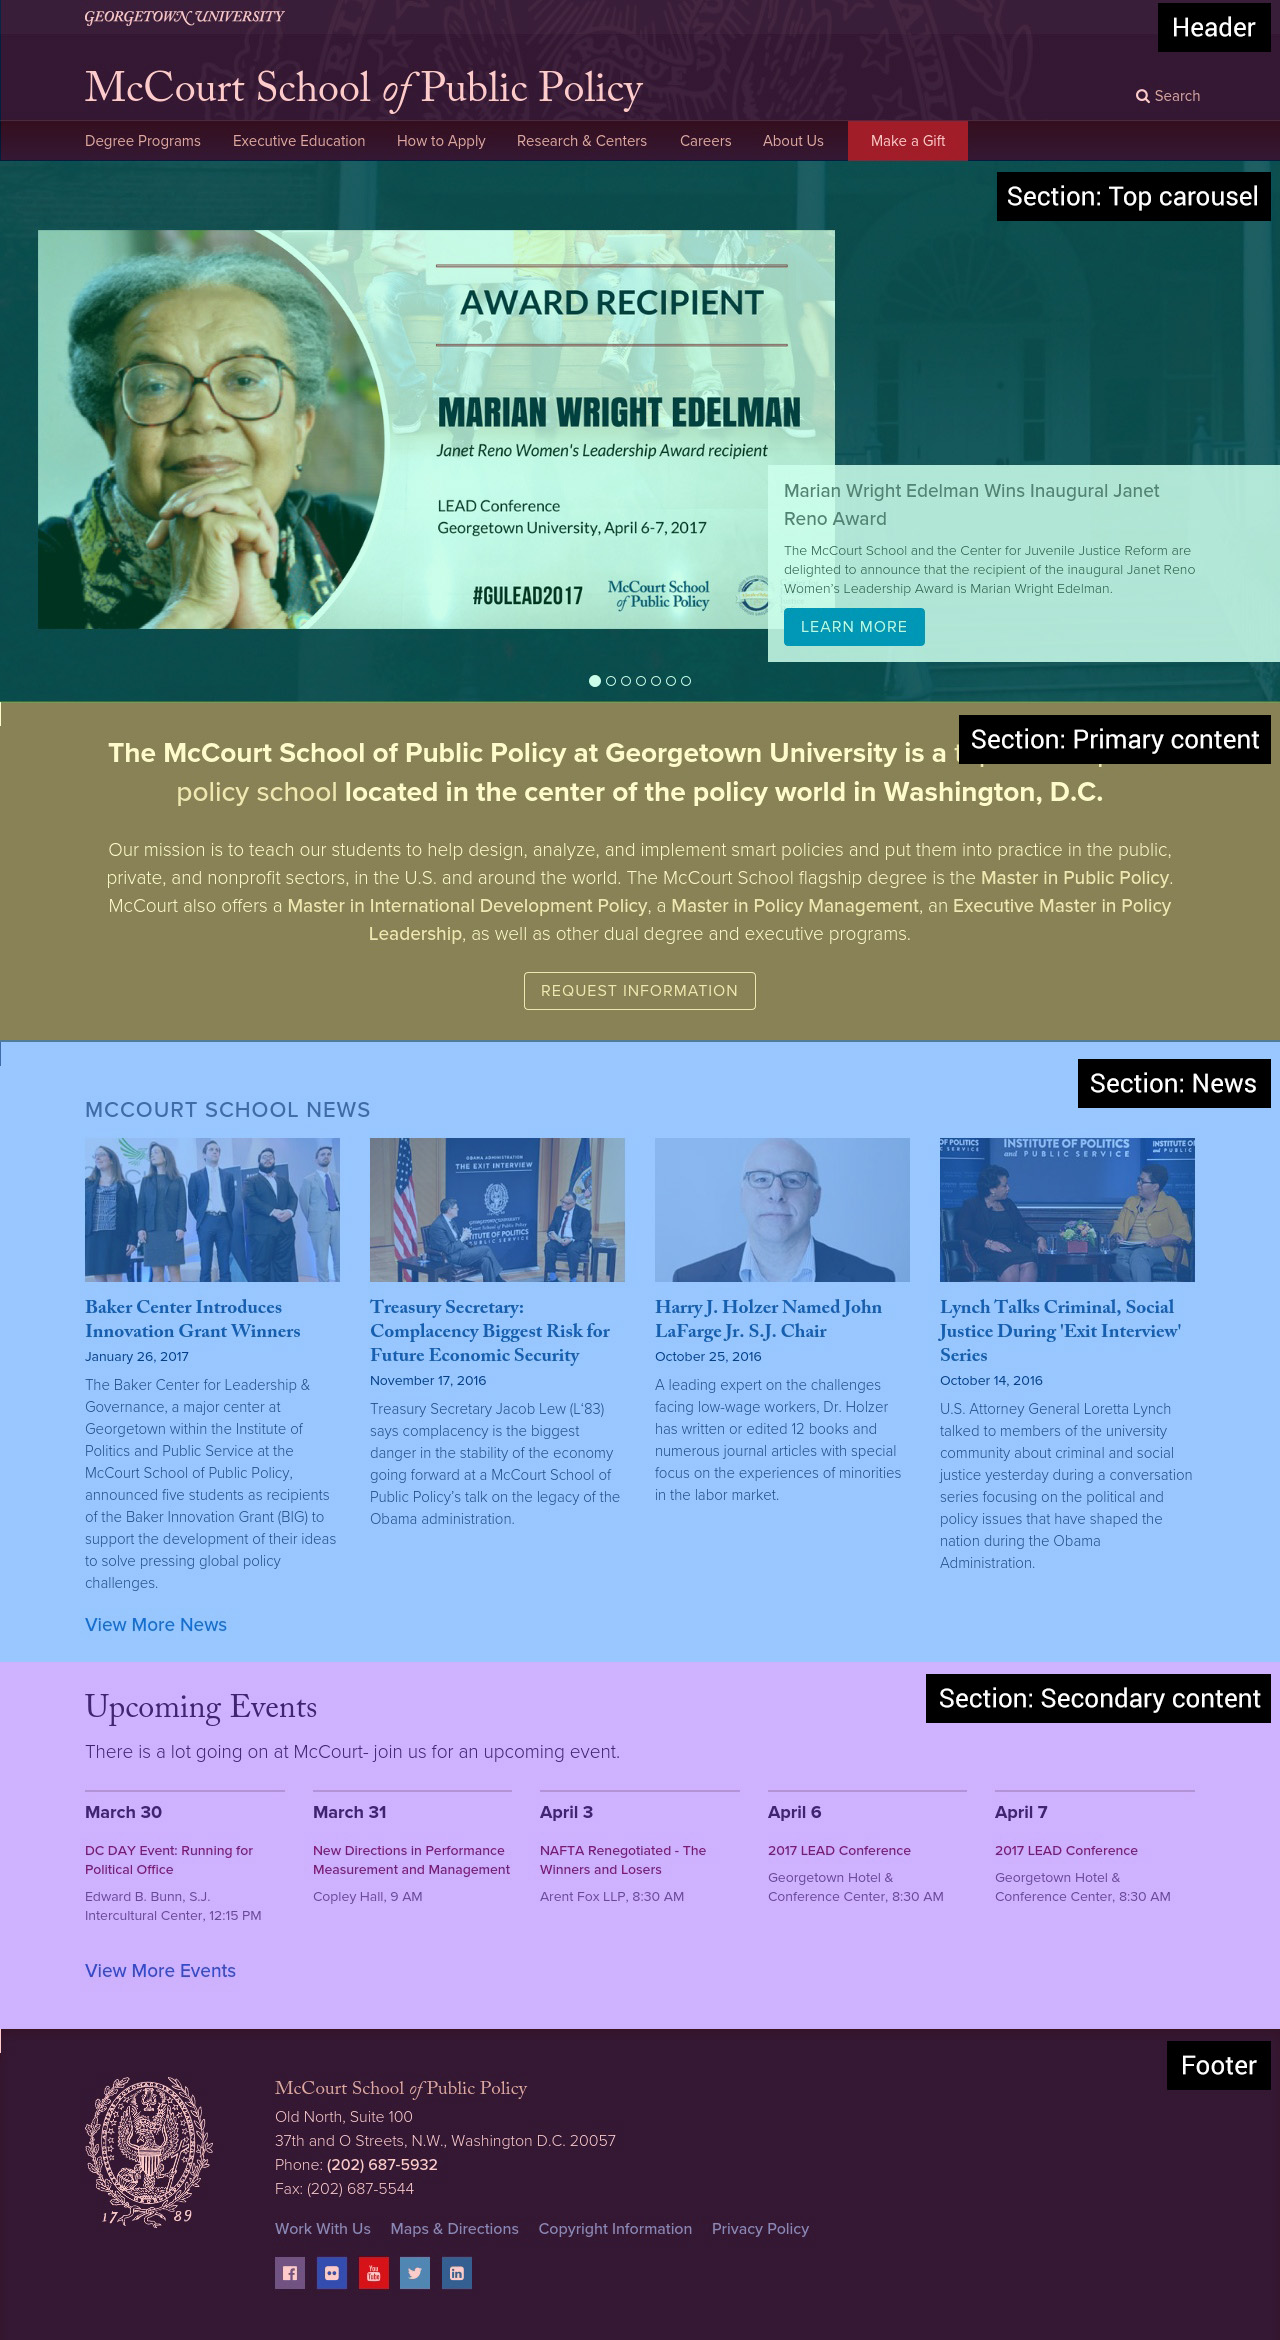 An example of how we identified landmarks on the McCourt School of Public Policy home page.